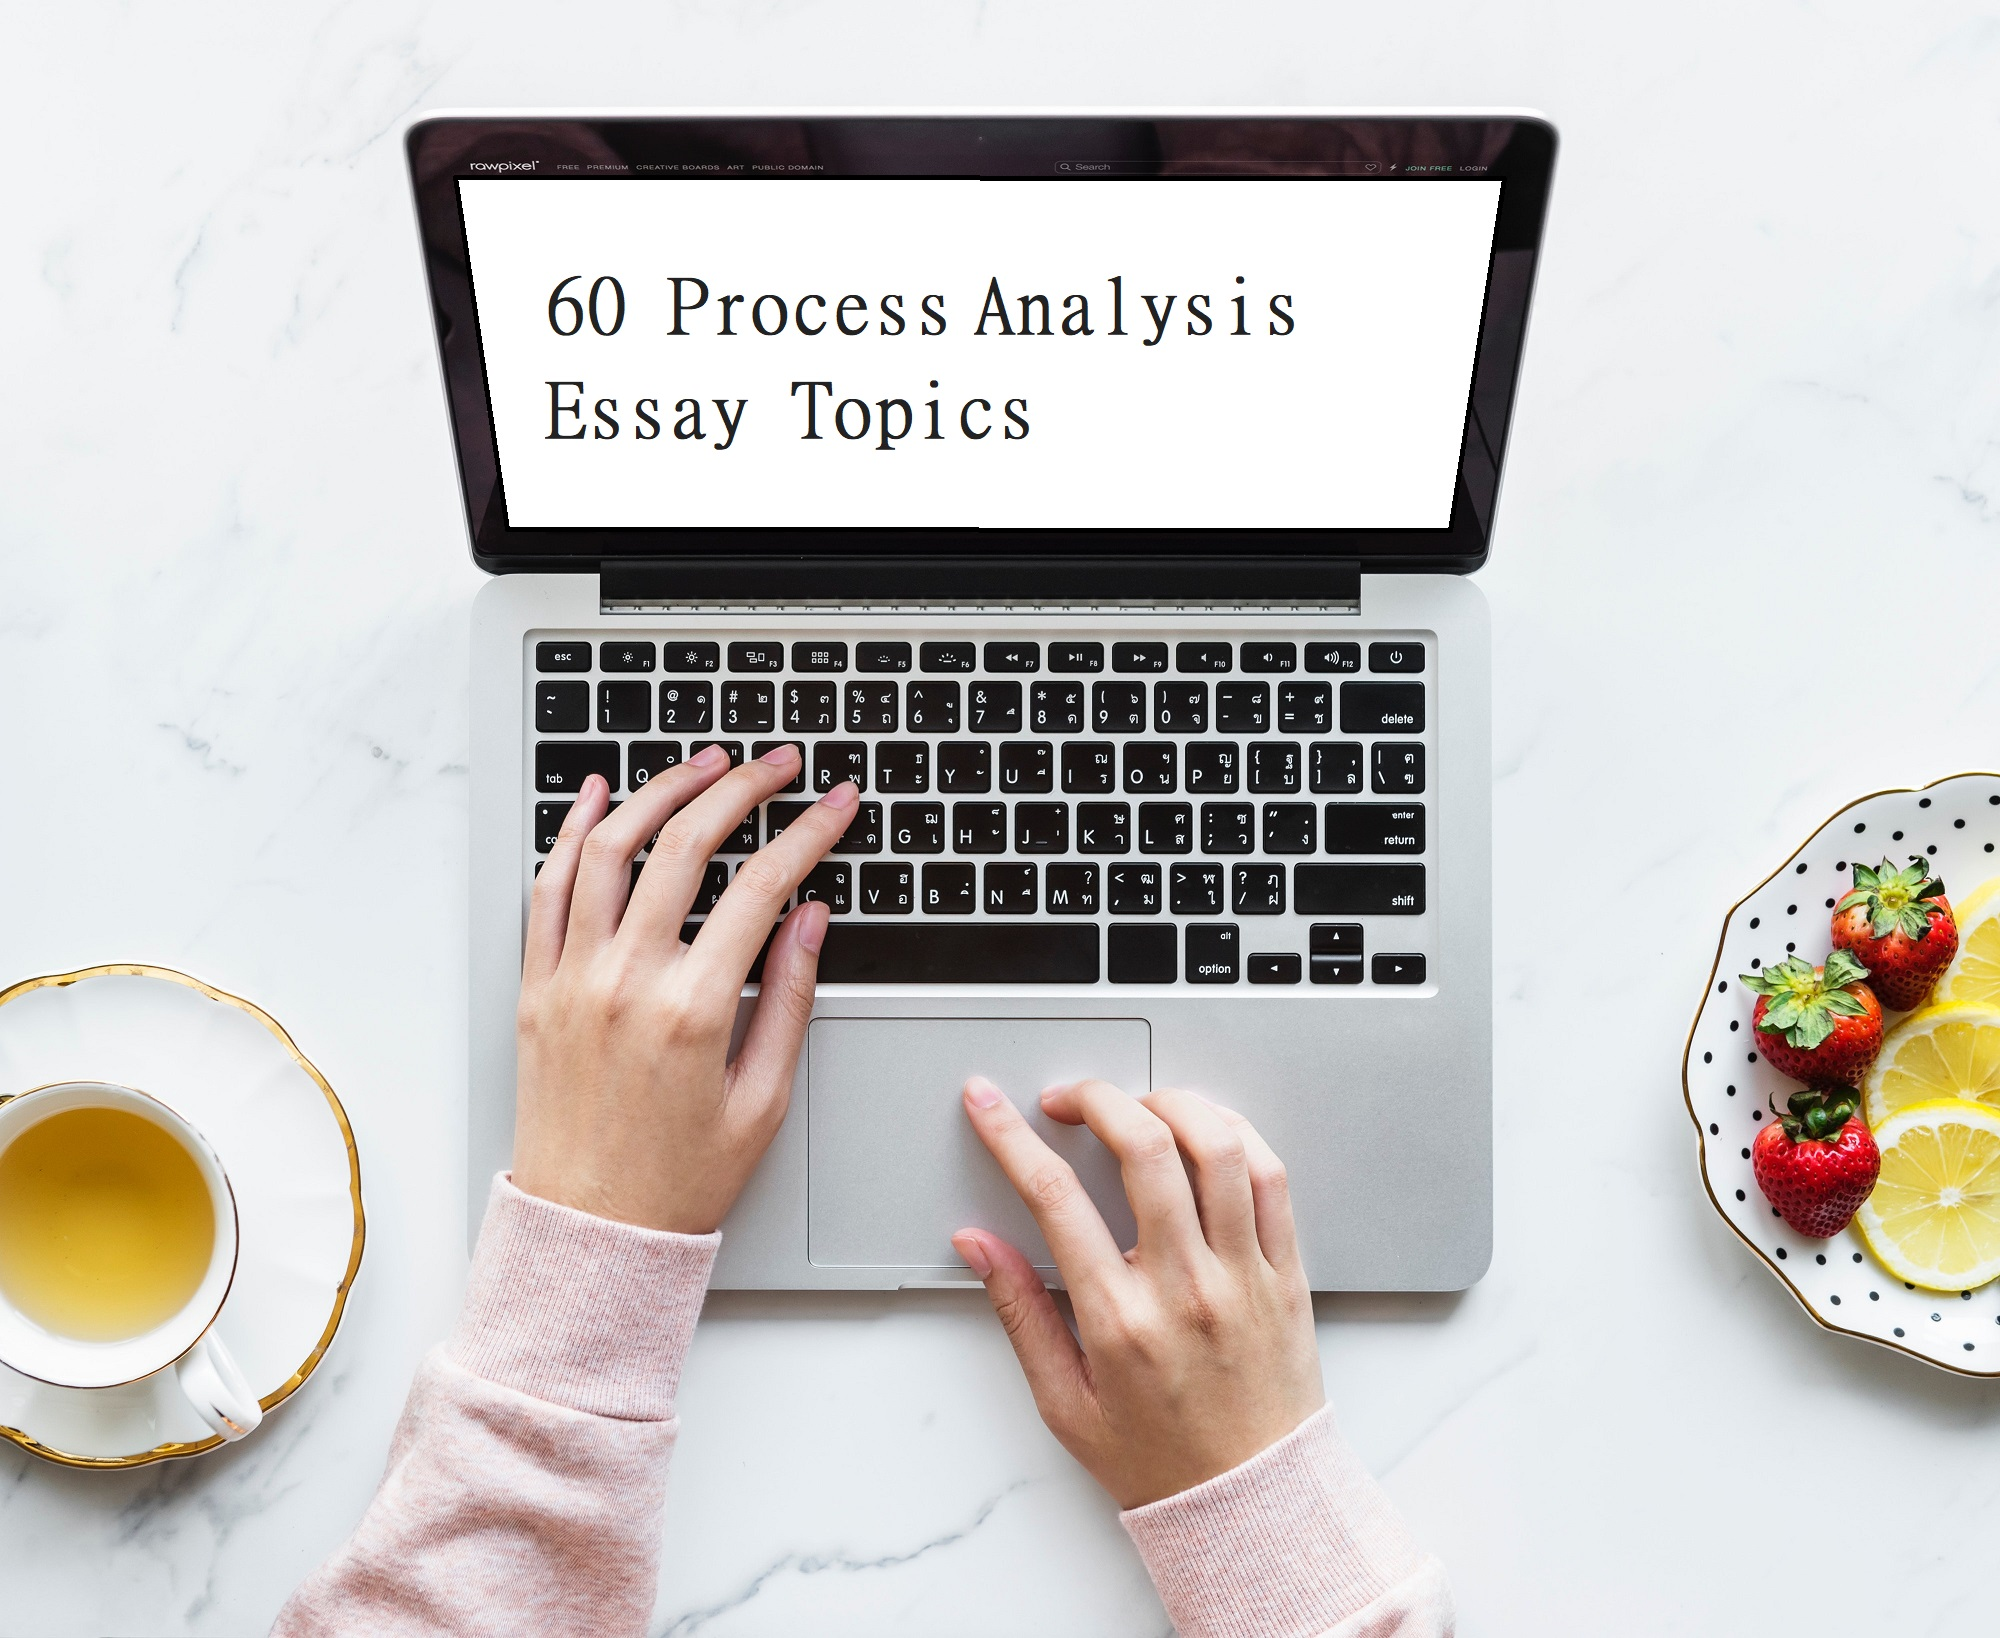 60 Process Analysis Essay Topics